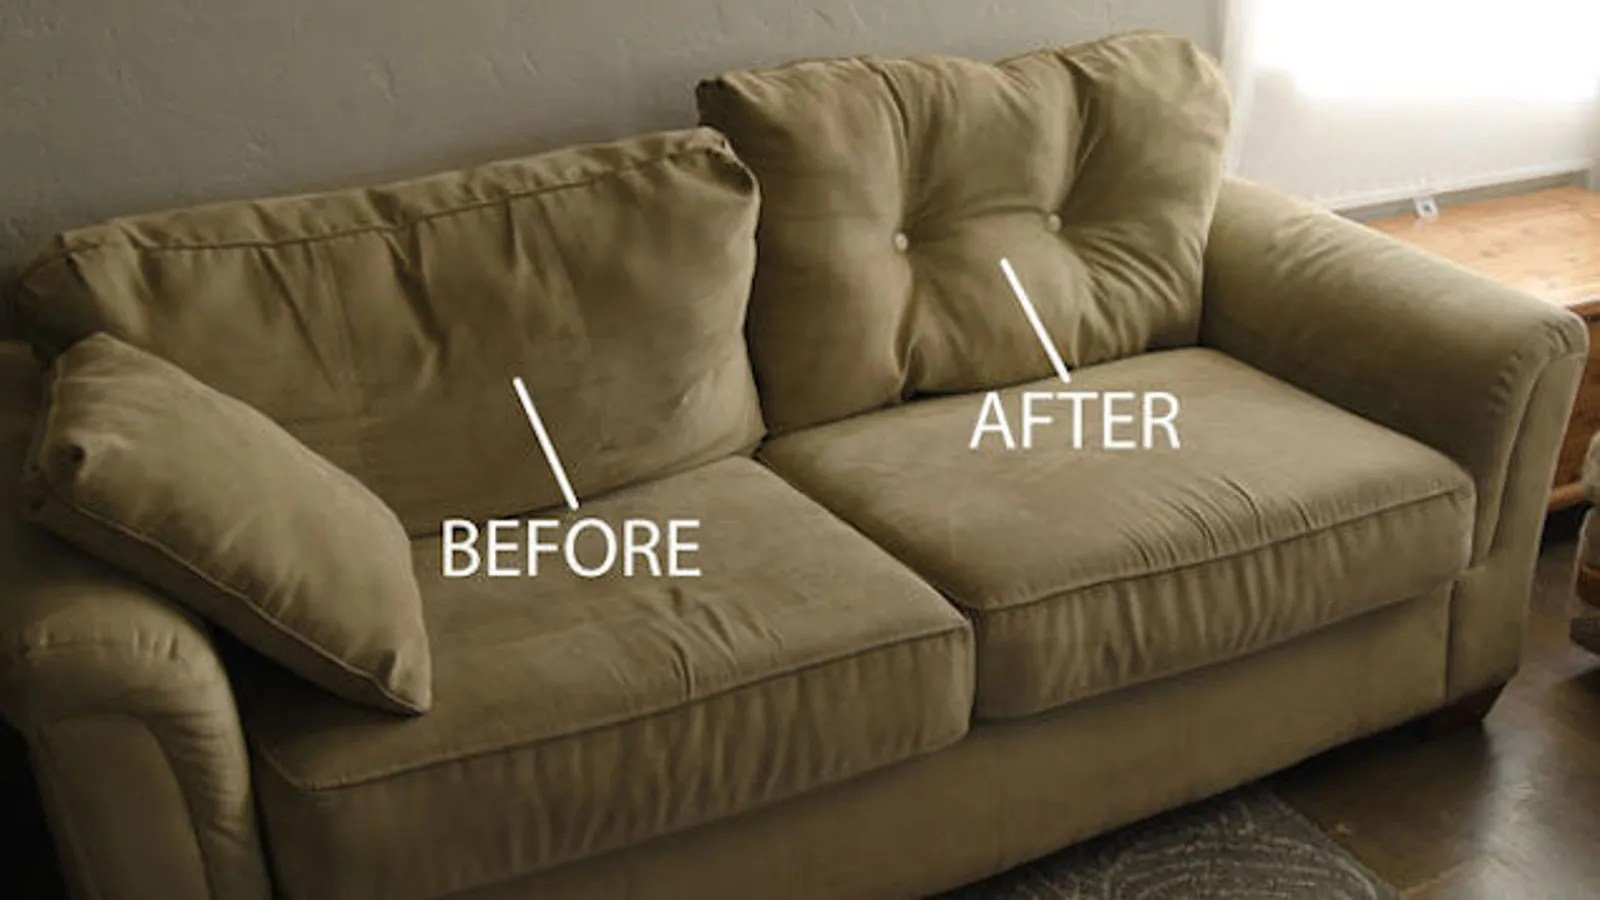 Sofa Cushions That Don't Go Flat Plump Up Saggy Couch Cushions With Just A Few Buttons